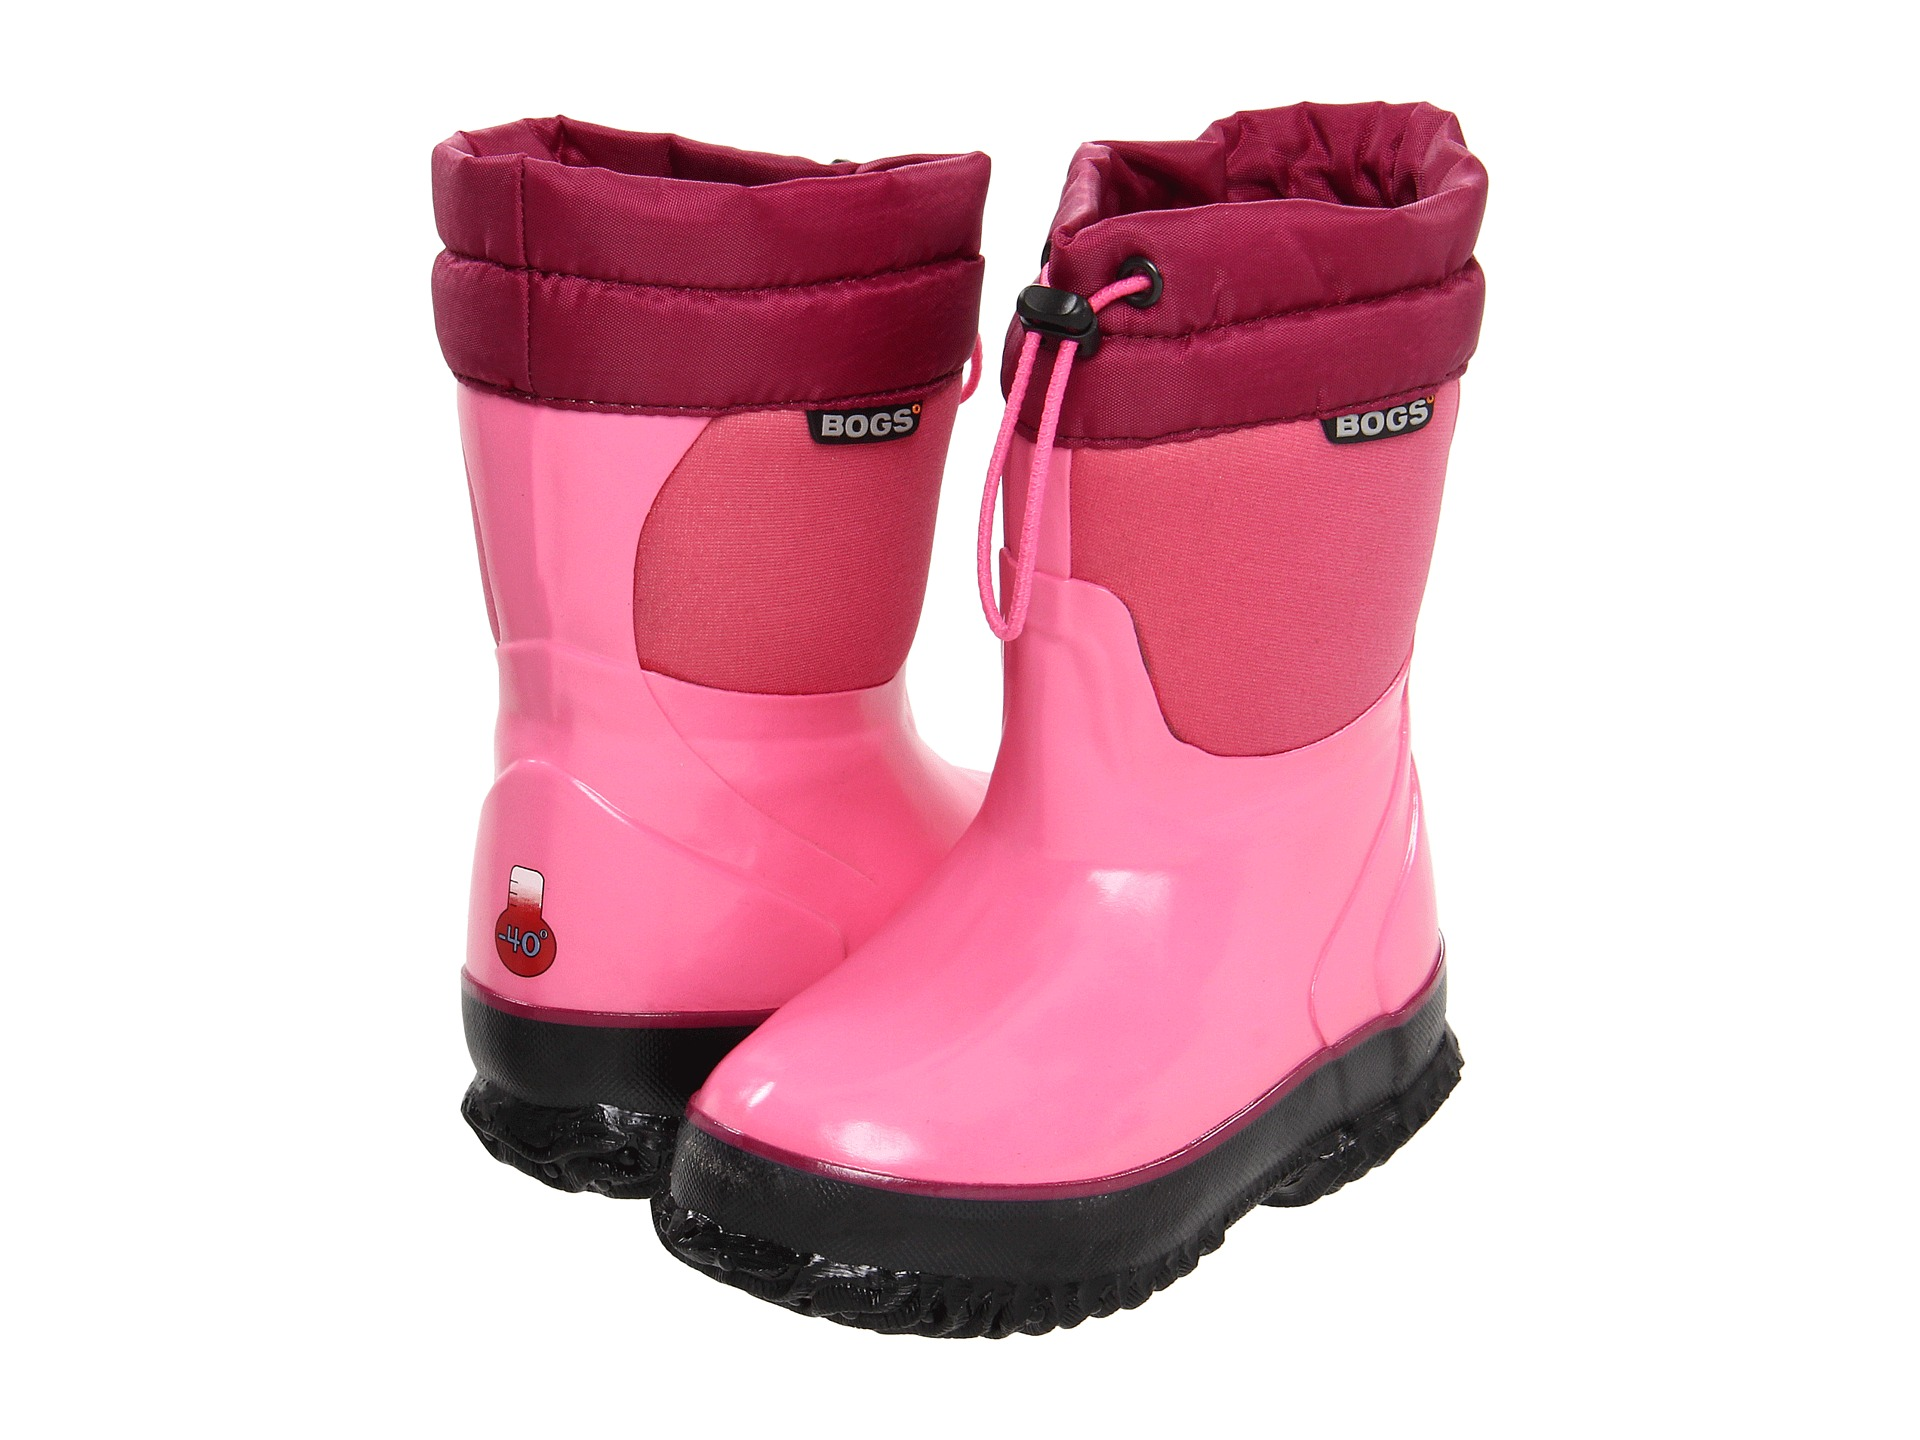 Where to buy kids boots Shoes online for women